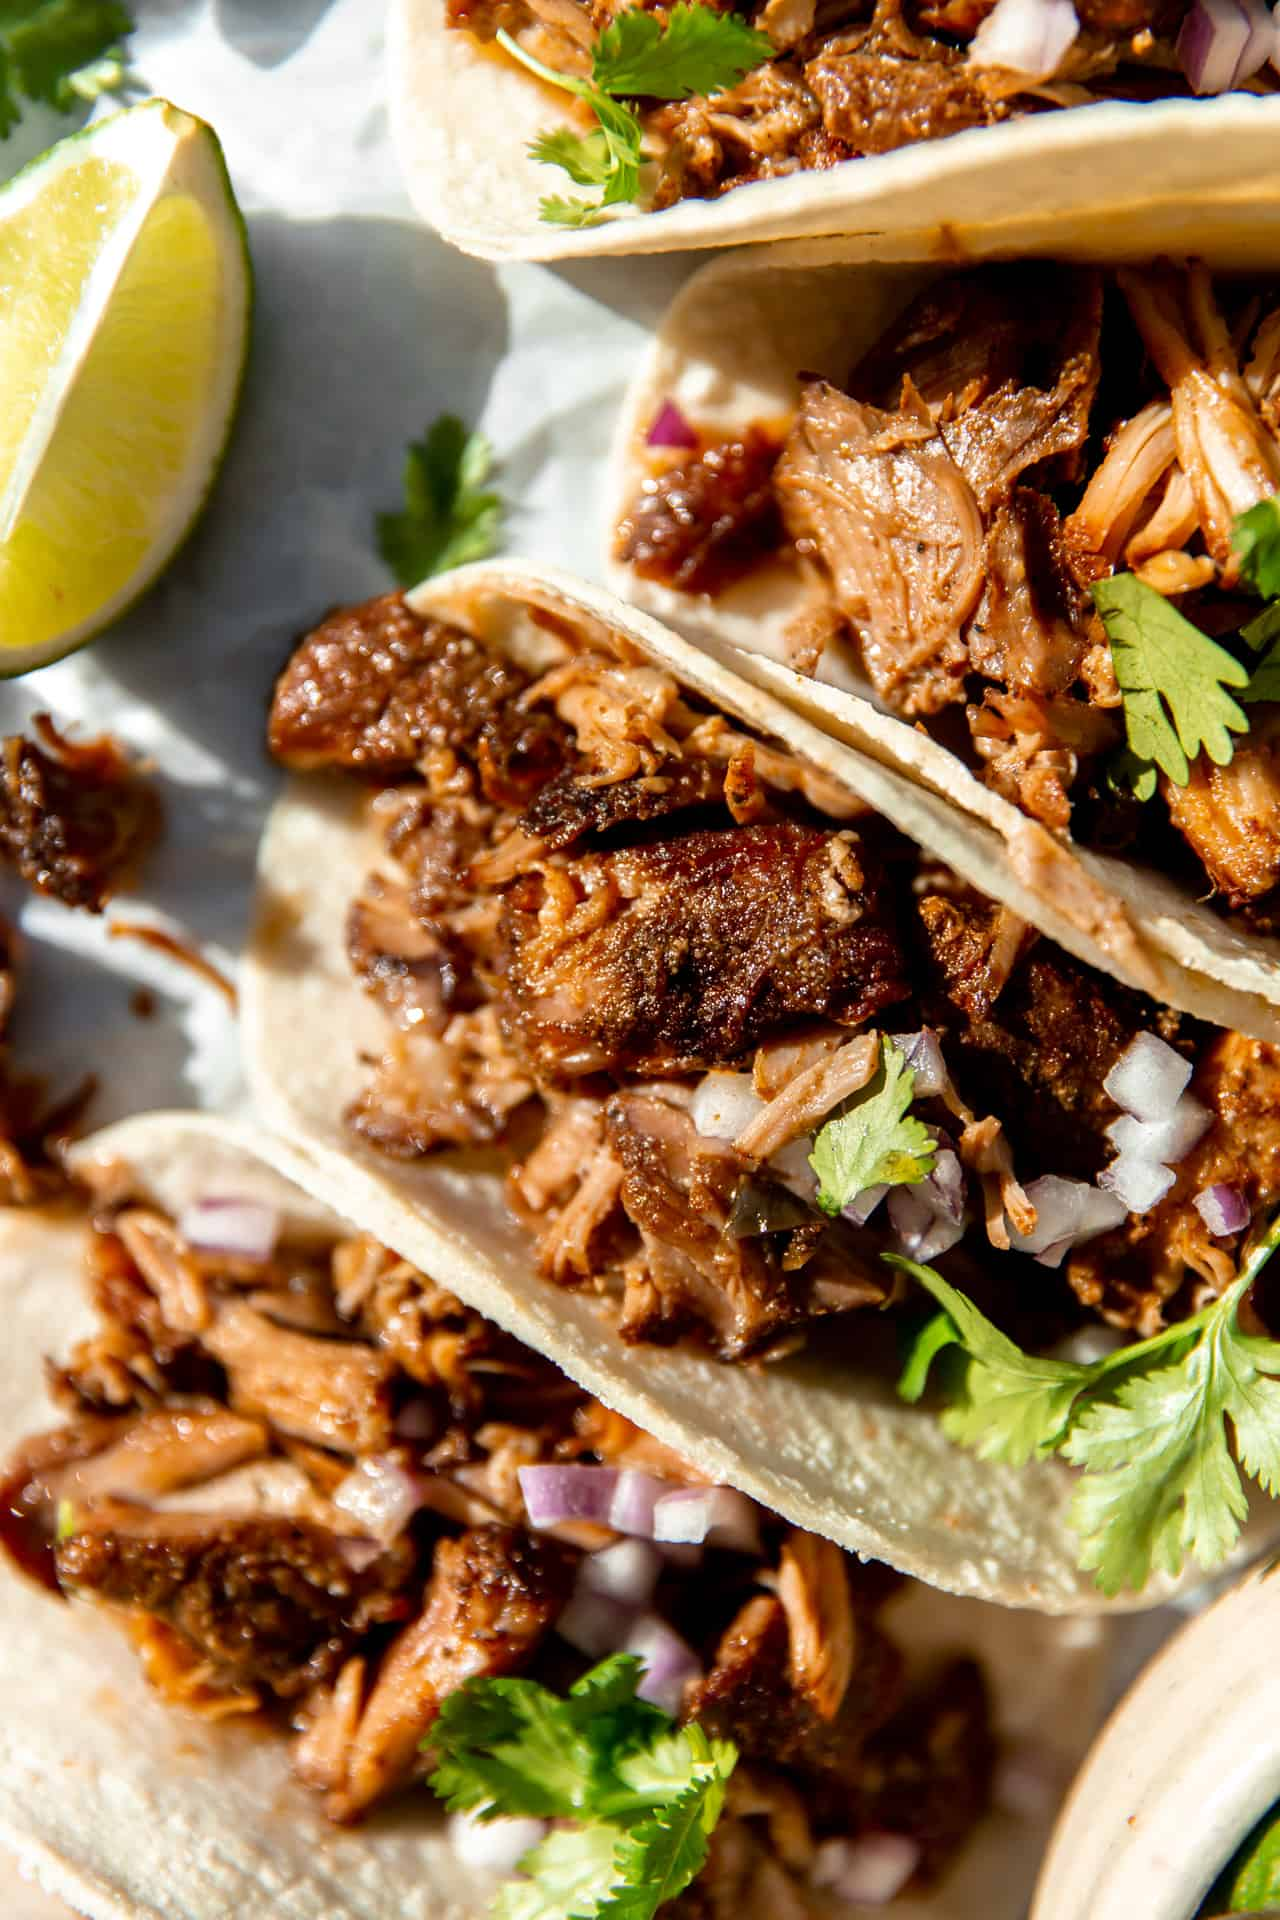 Up close view of carnitas tacos showing crispy pieces of pork in soft corn tortillas with cilantro and diced onion.